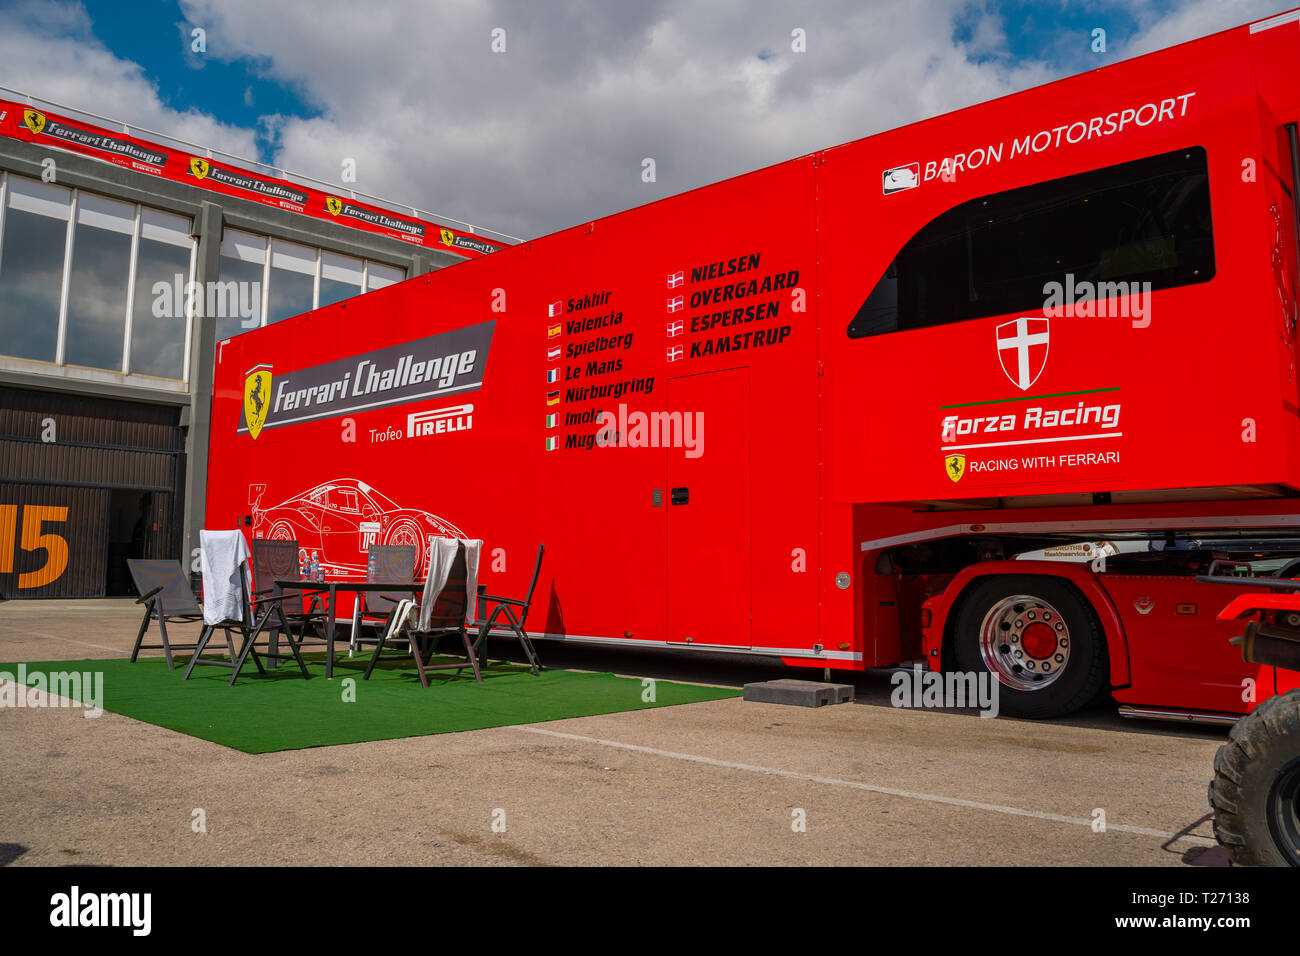 Cheste Valencia Spain 30th March 2019 Race In Spain Of The Scuderia Competition Ferrari Challenge 2019 Cheste Valencia Championship Credit Vivitaart Alamy Live News Credit Vivitaart Alamy Live News Stock Photo Alamy